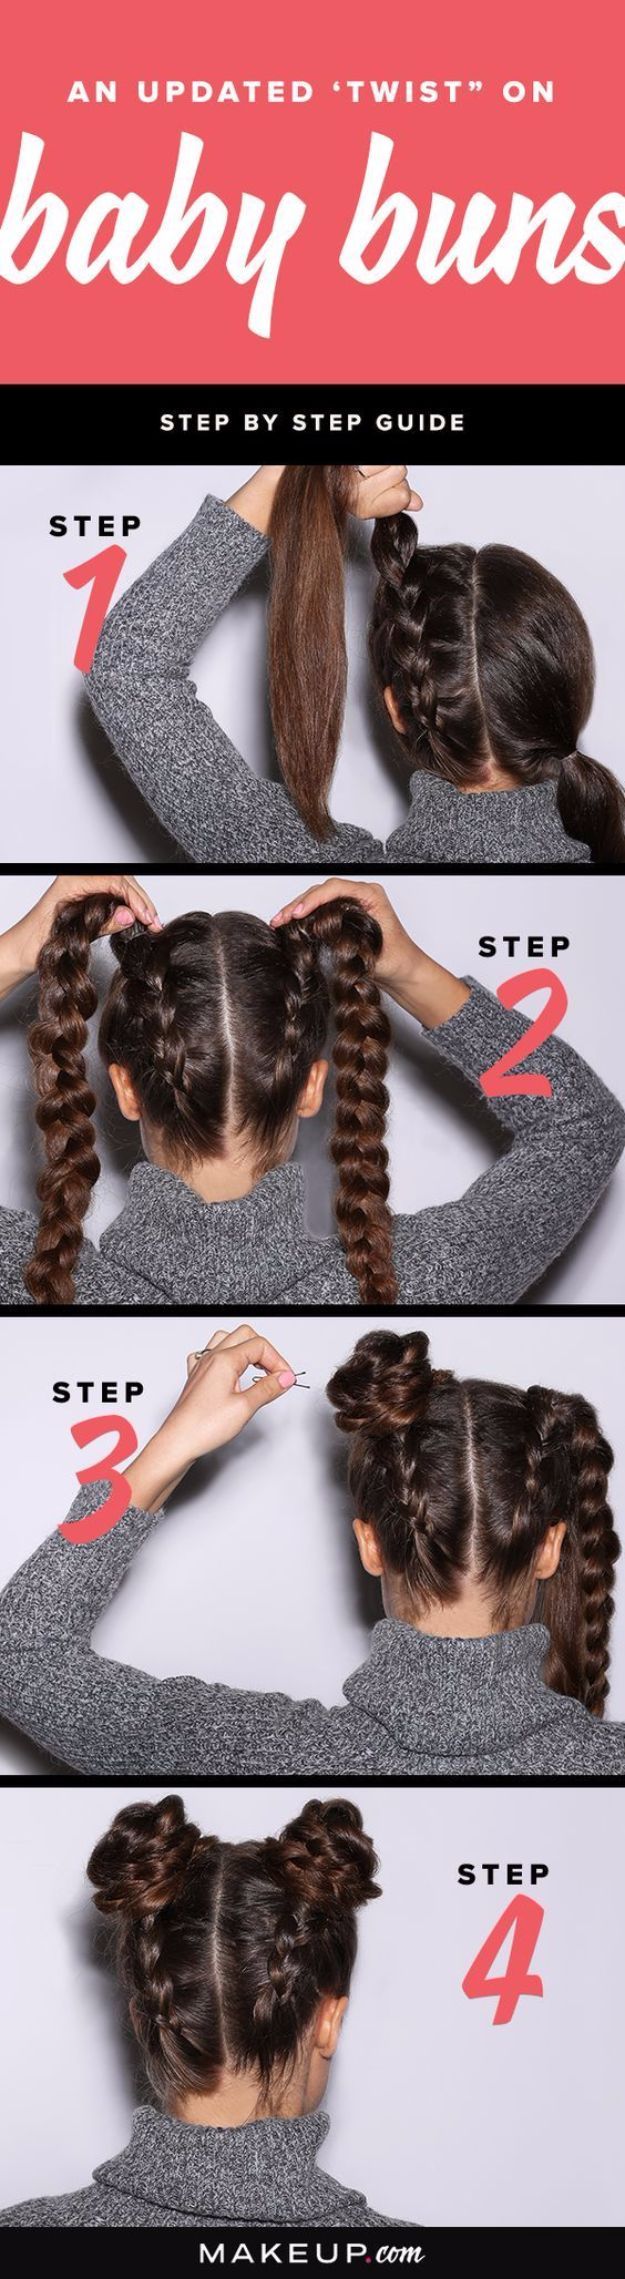 Easy Braids With Tutorials - Braided Baby Buns - Cute Braiding Tutorials for Teens, Girls and Women - Easy Step by Step Braid Ideas - Quick Hairstyles for School - Creative Braids for Teenagers - Tutorial and Instructions for Hair Braiding http://diyprojectsforteens.com/easy-braids-tutorials